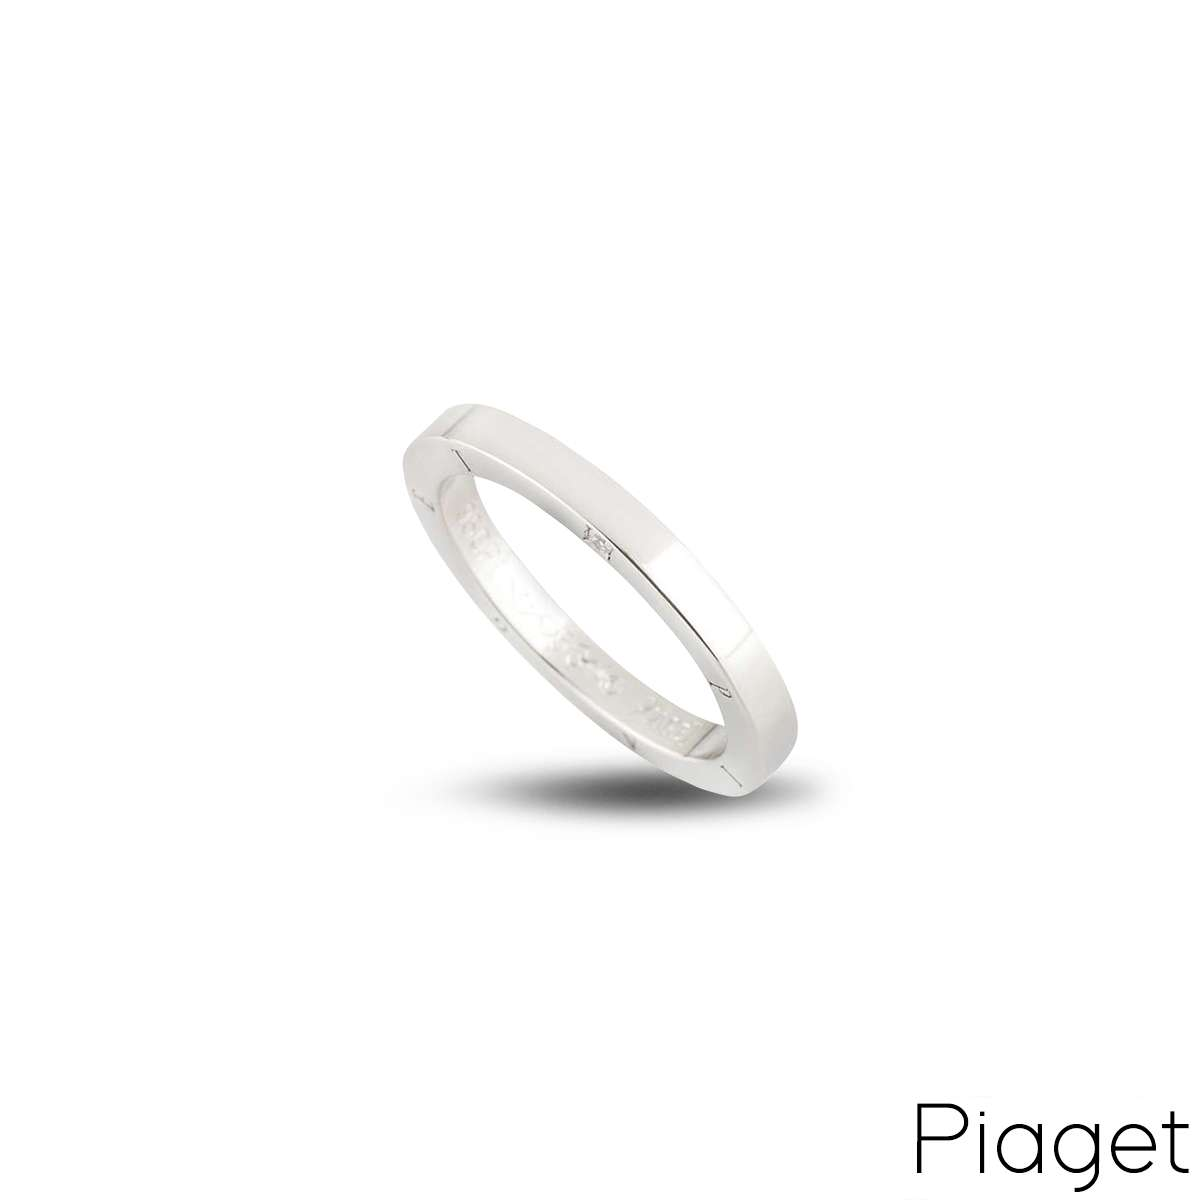 Piaget Diamond Set Wedding Band in Platinum?